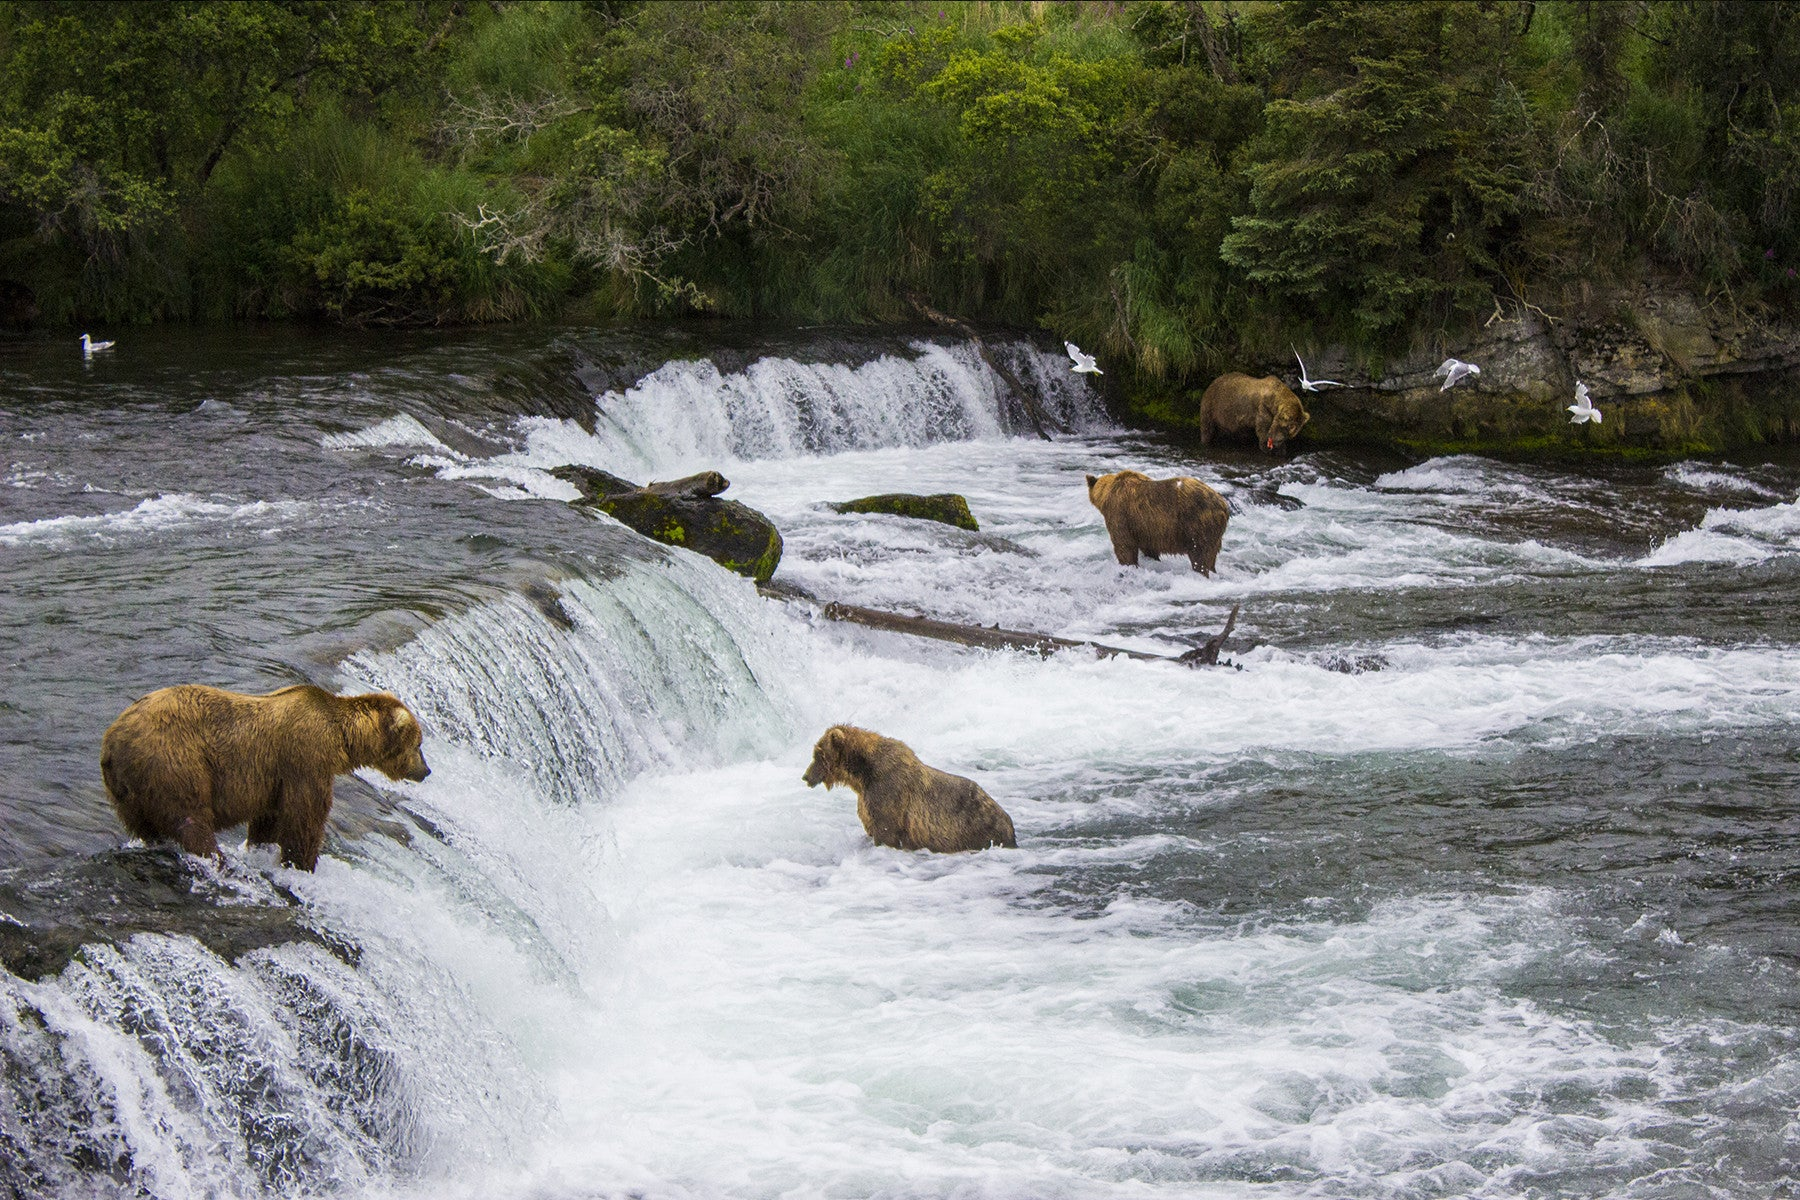 Katmai National Park - Brooks Falls - Bears Fishing